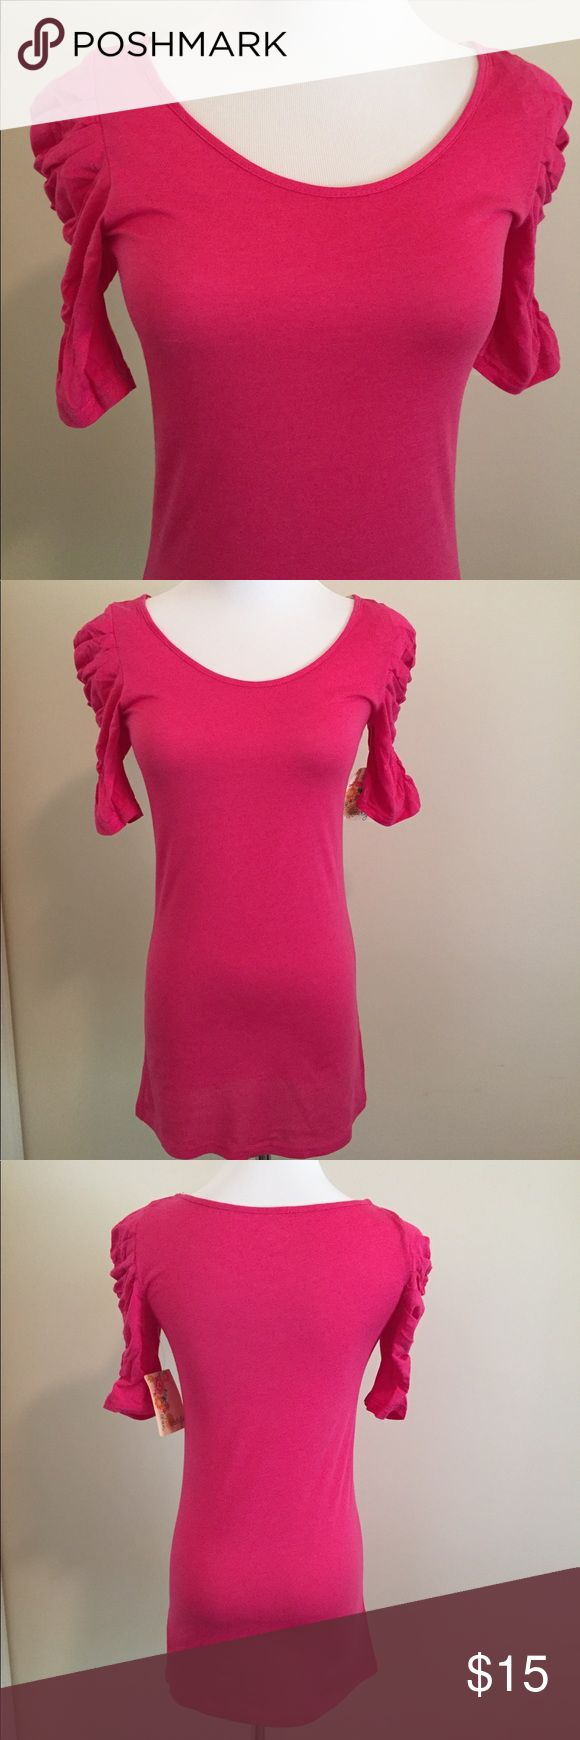 "🆕 NWT Energie Hot Pink Blouse Brand new with tag and never worn, Energie brand hot pink lightweight blouse with 3/4 ruched sleeves. Blouse runs on the longer side and measures approximately 27"" long, so perfect for the taller girls. Form fitting size Medium. In new condition. Please ask any questions. Open to reasonable offers. Energie Tops Blouses"